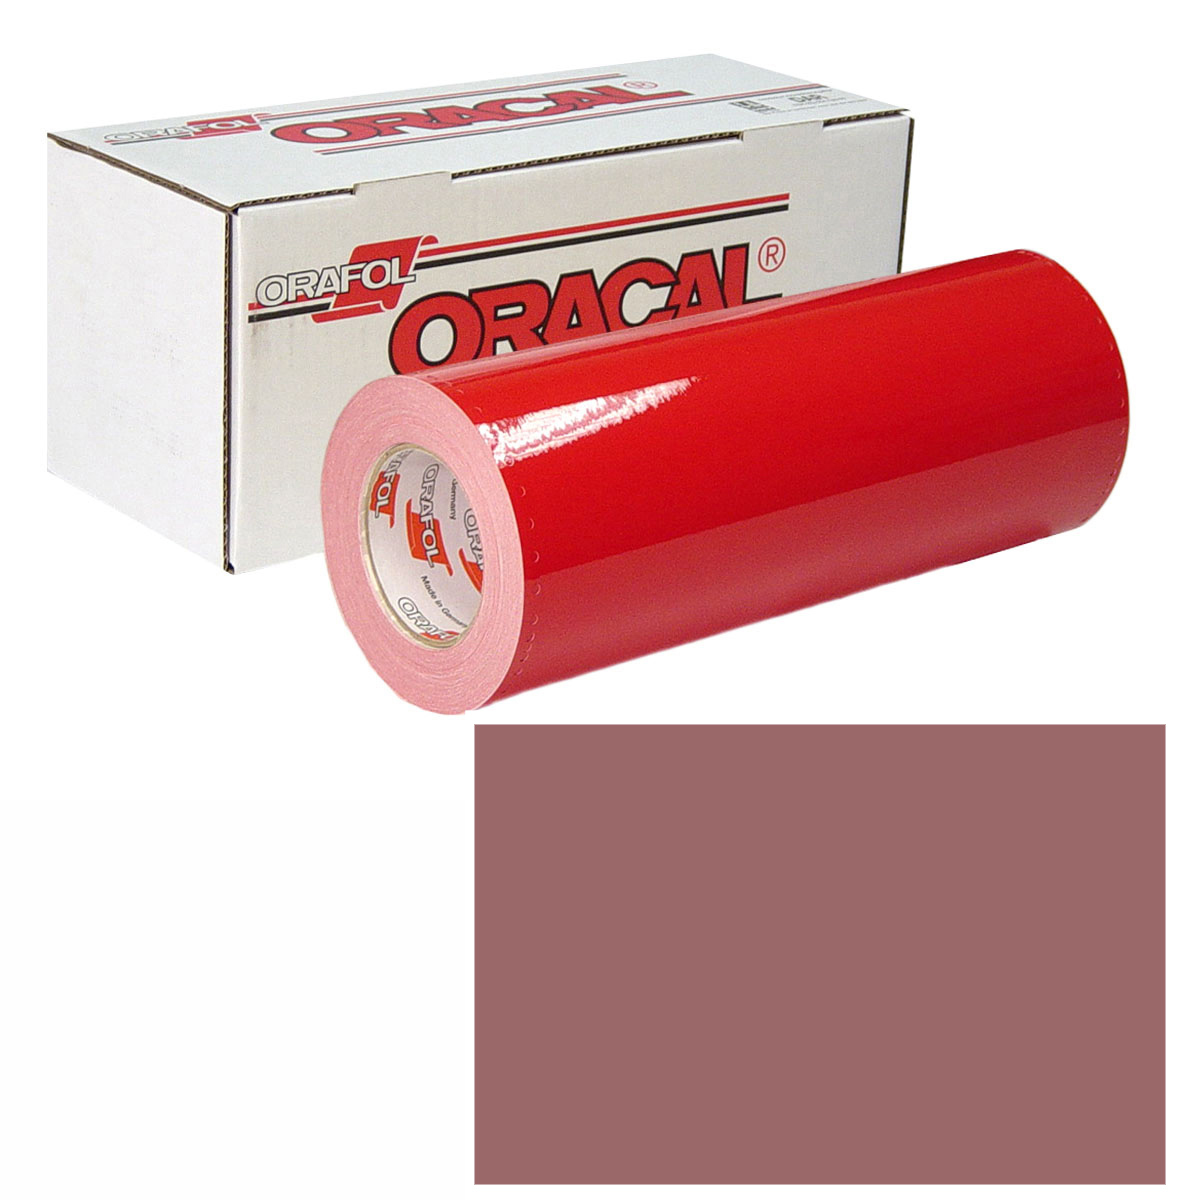 ORACAL 951 15in X 10yd 079 Red Brown